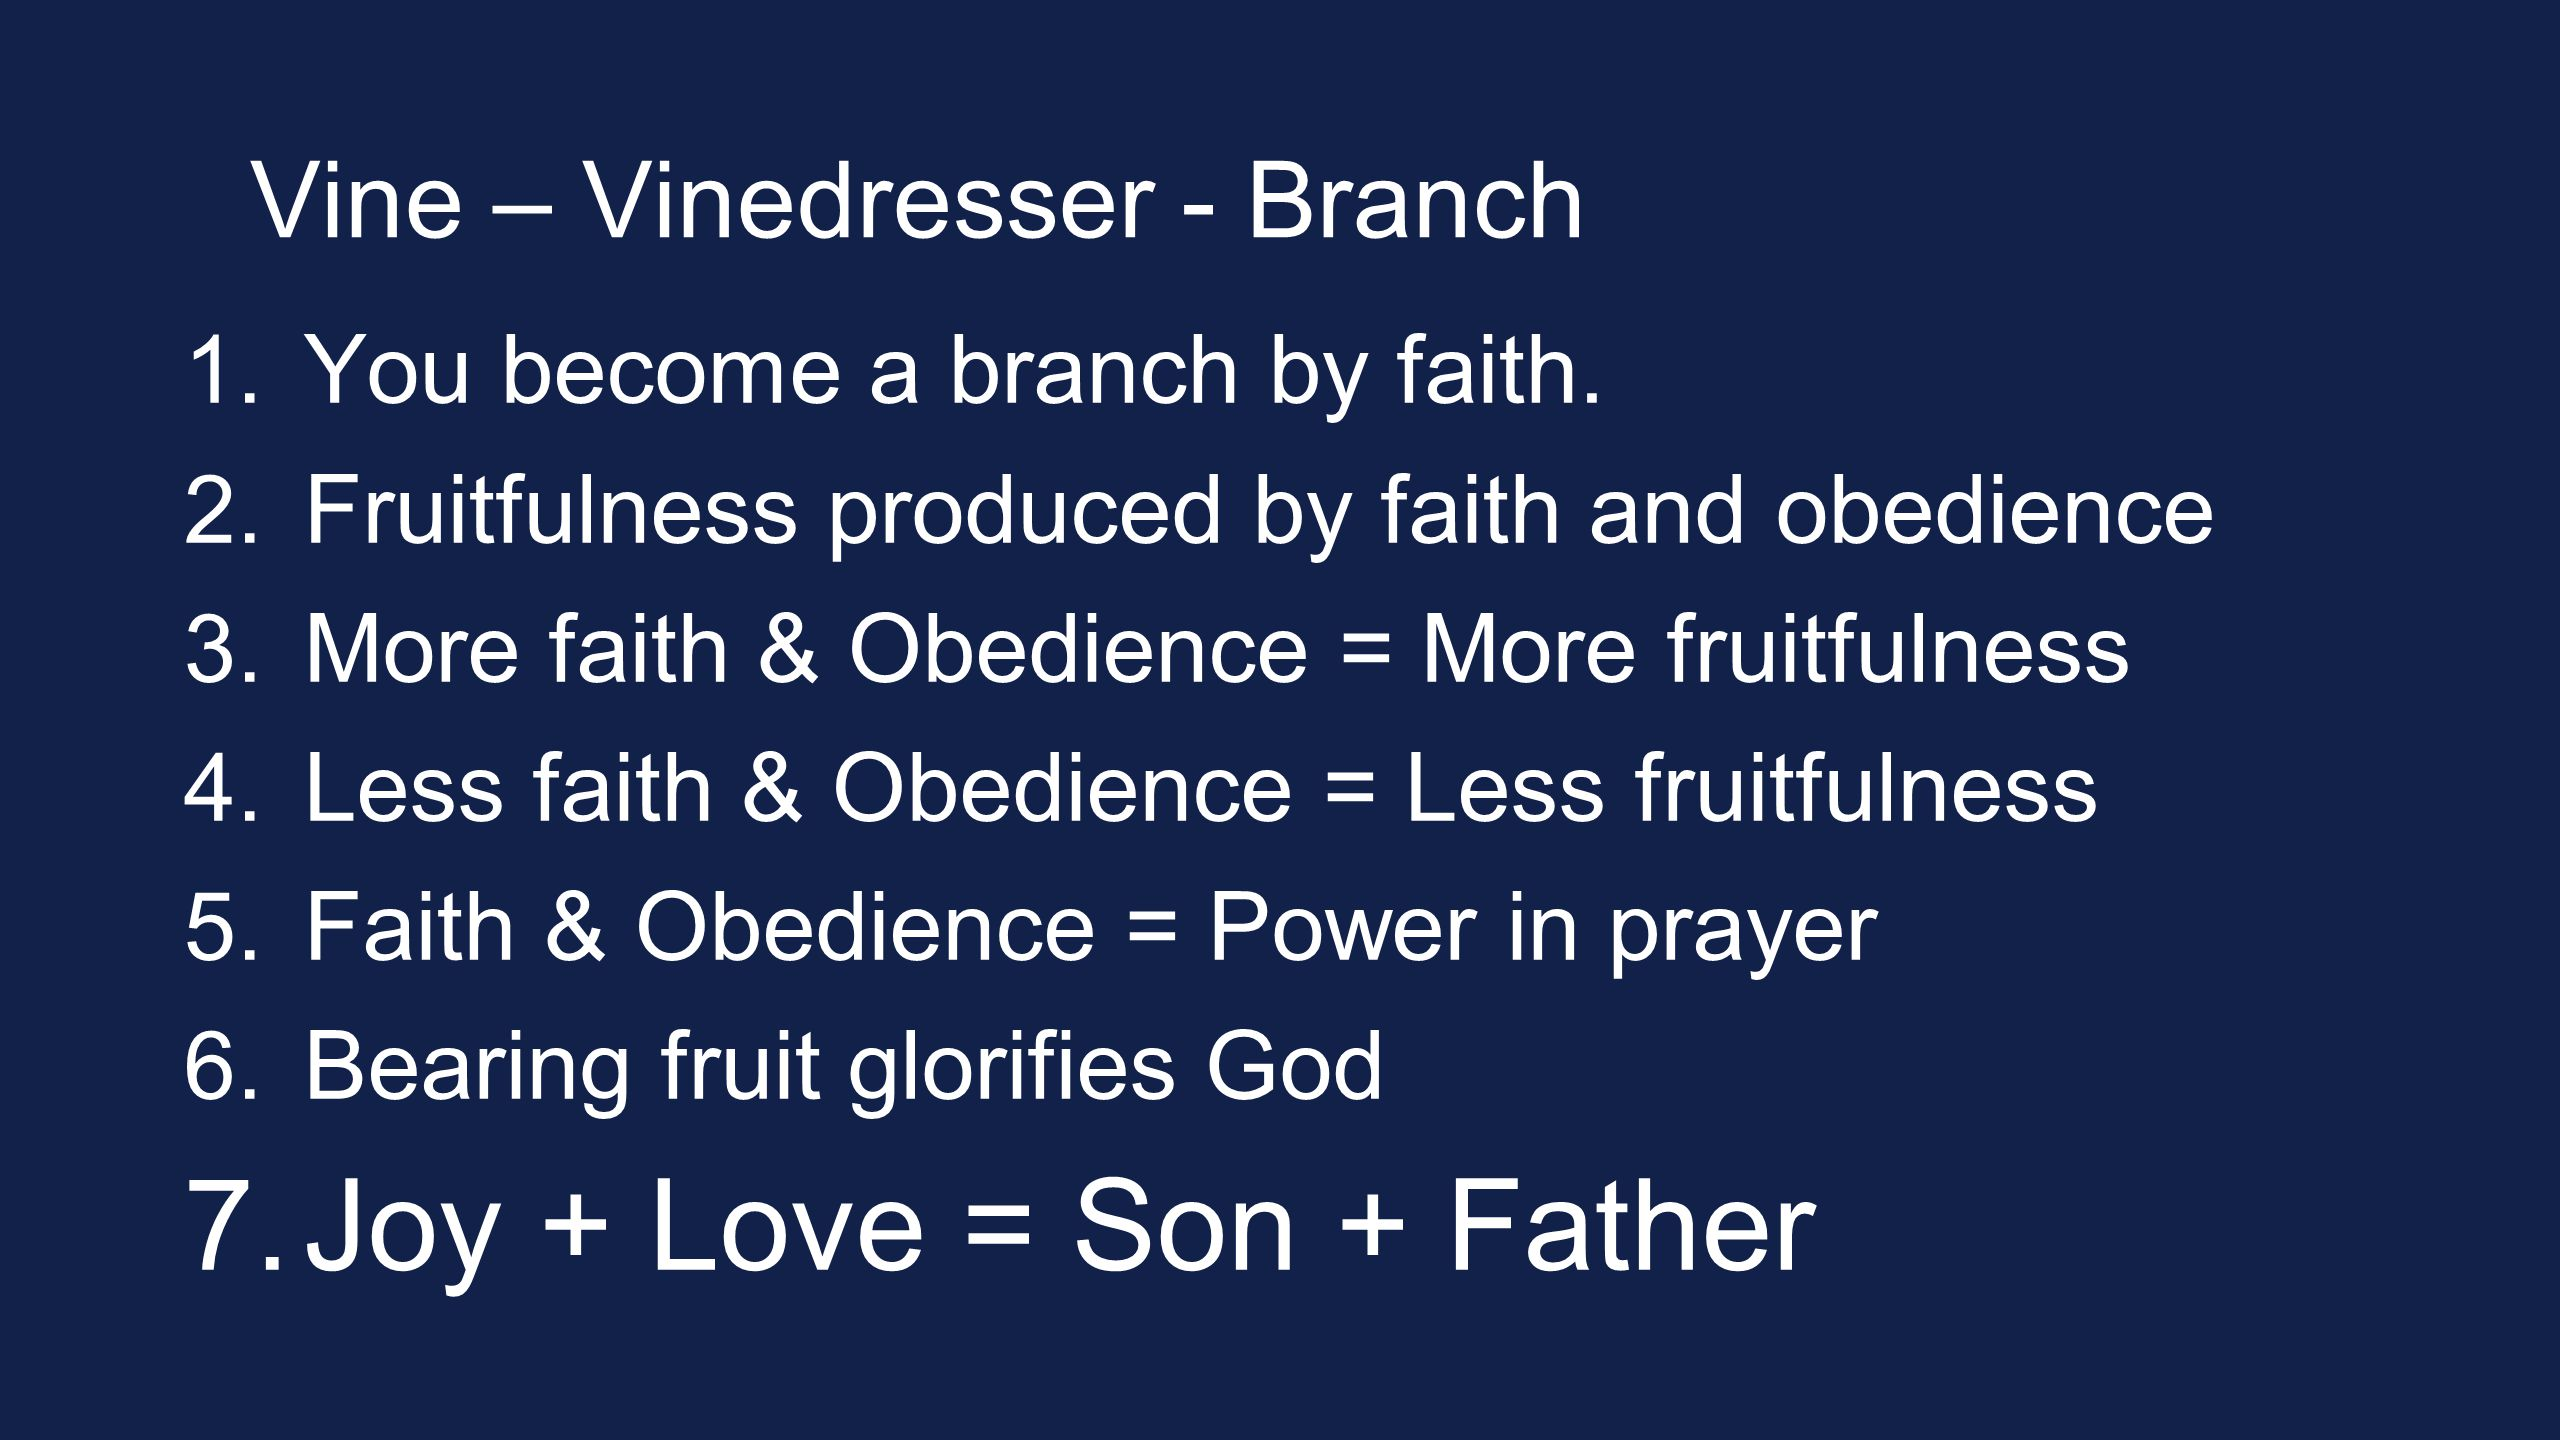 Vine – Vinedresser - Branch 1. You become a branch by faith.